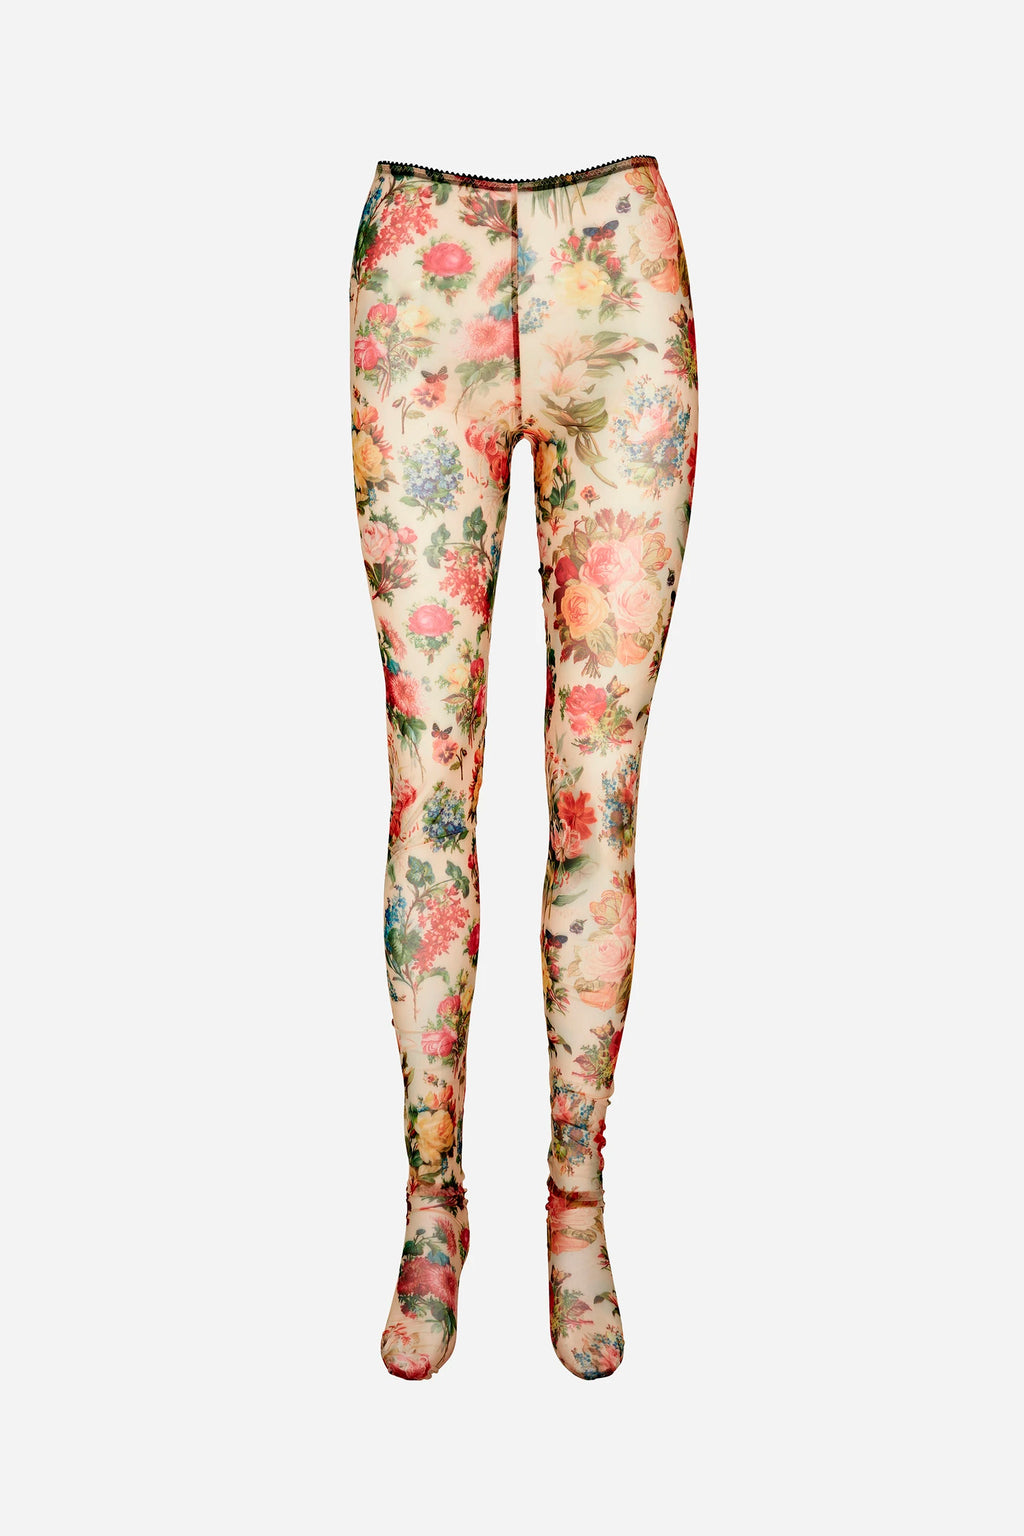 FADED MEMORY LEGGINGS